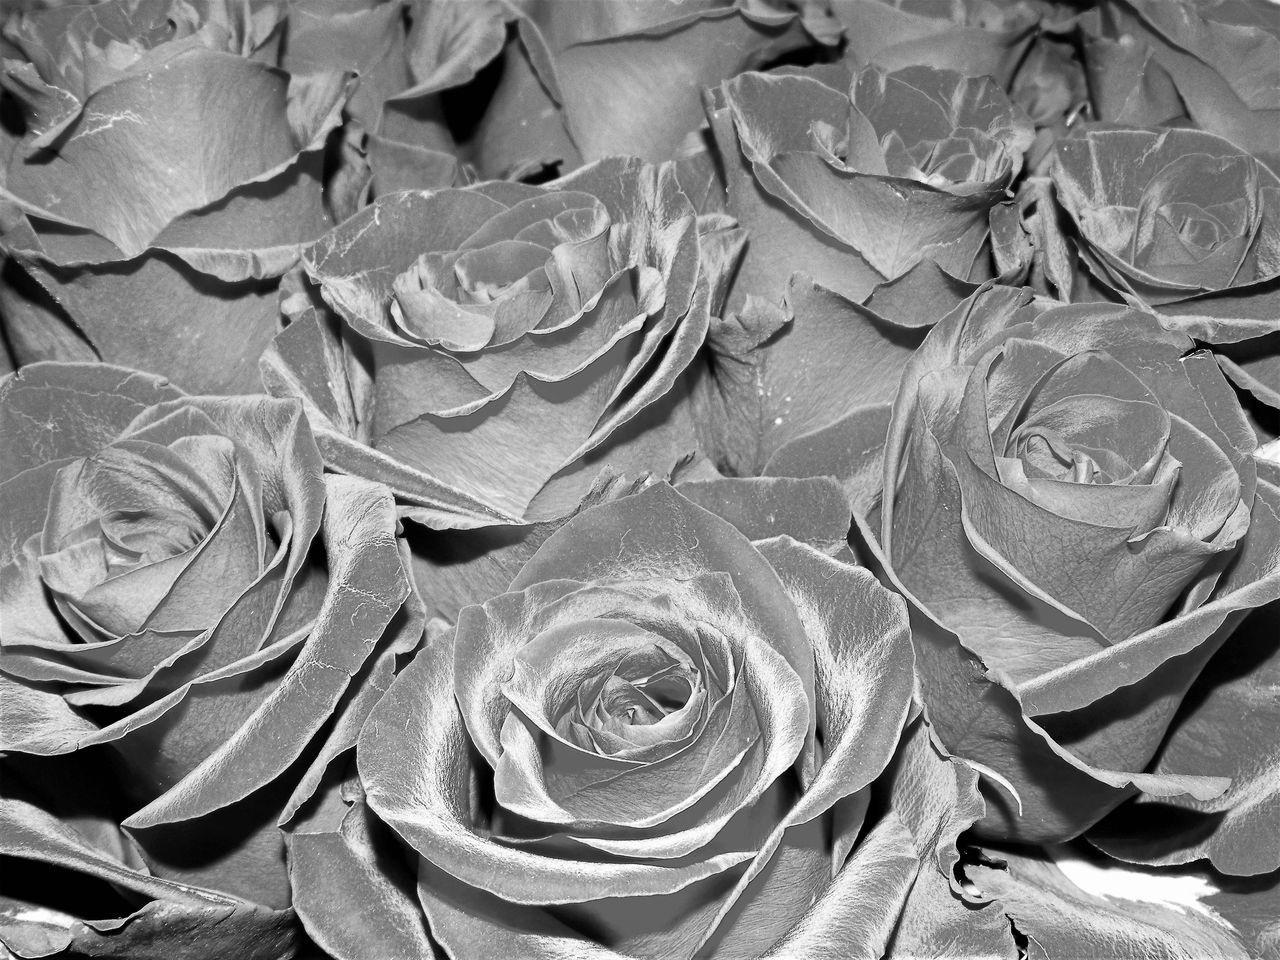 Abstract Backgrounds Beauty In Nature Close-up Day Flower Flower Head Fragility Freshness Full Frame Leaf Nature No People Outdoors Pattern Roses Flowers  Roses🌹 Rose🌹 Textured  Water